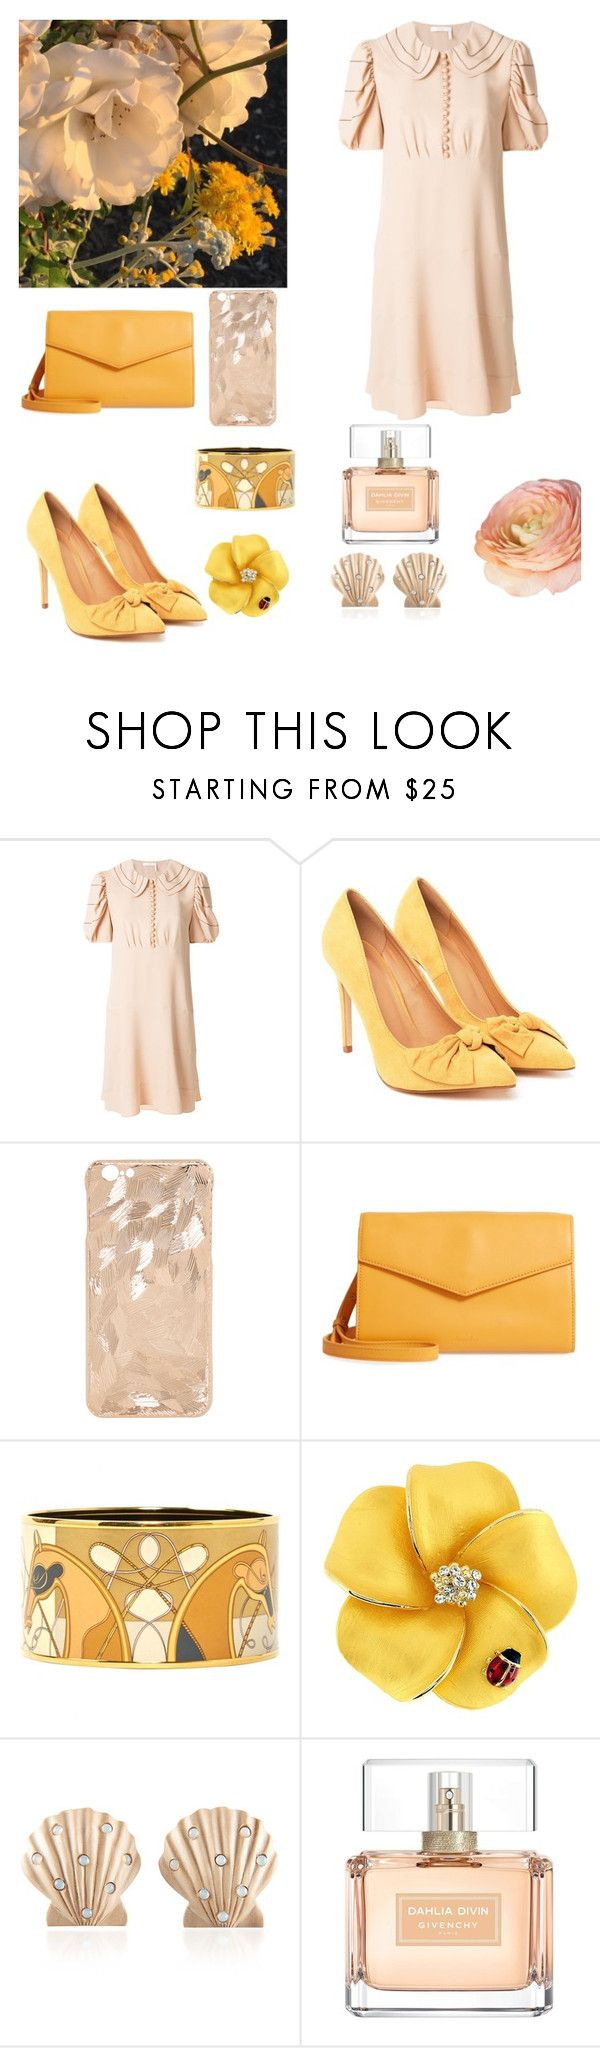 Rose Gold by katherinedanilova on Polyvore featuring Chloé, Nasty Gal, Steven Alan, Hermès, Rebecca de Ravenel, Givenchy and pentatonix